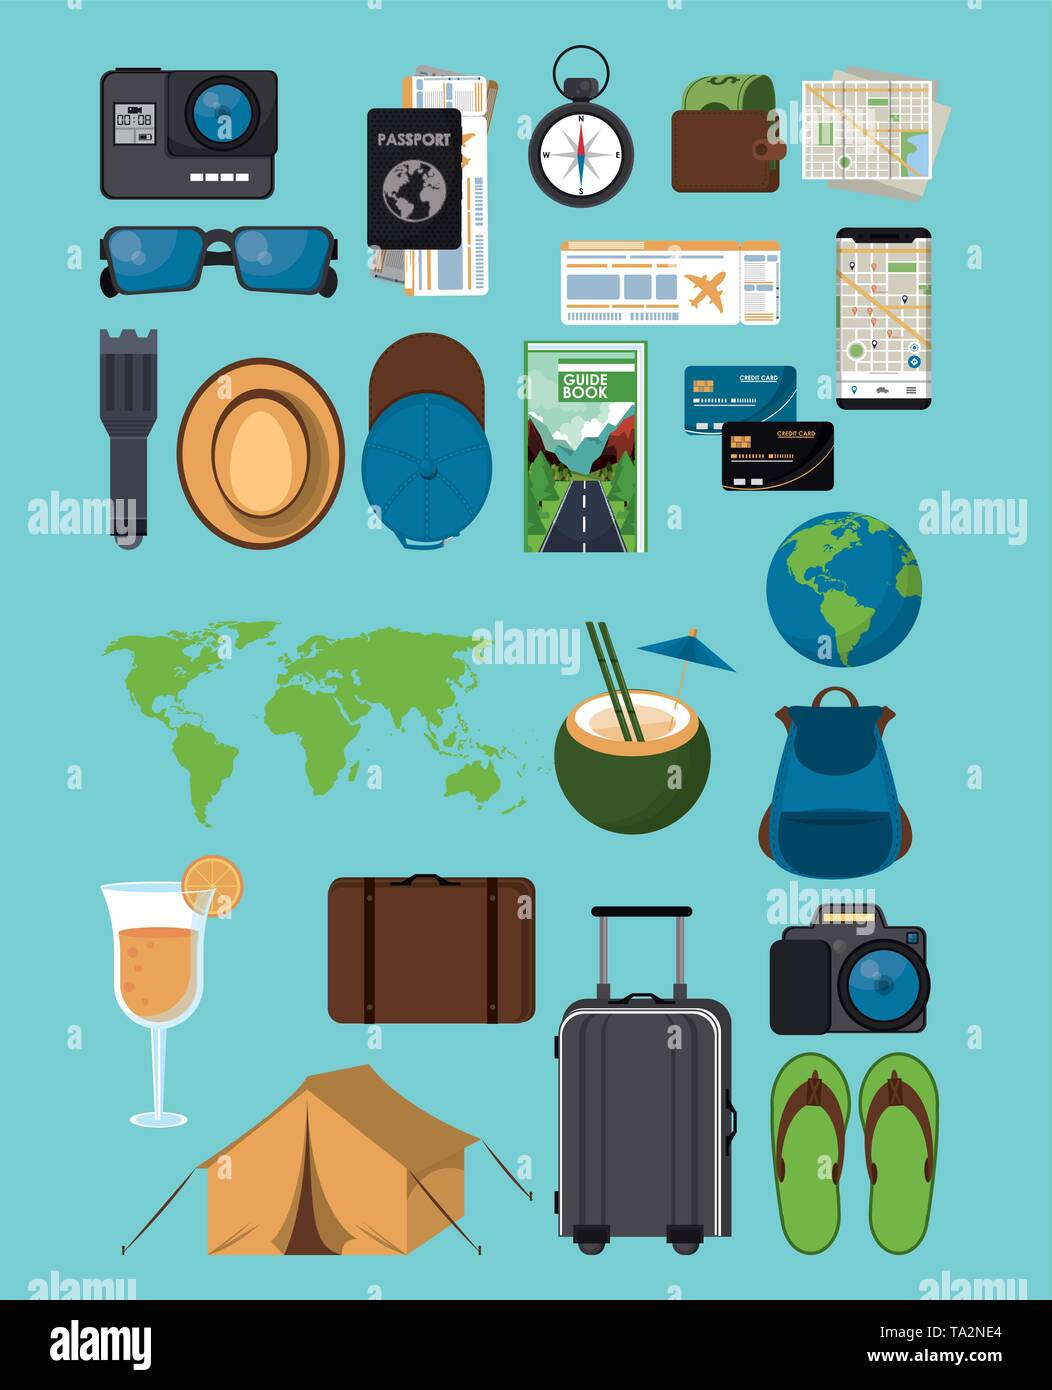 Travel and tourism icons - Stock Image